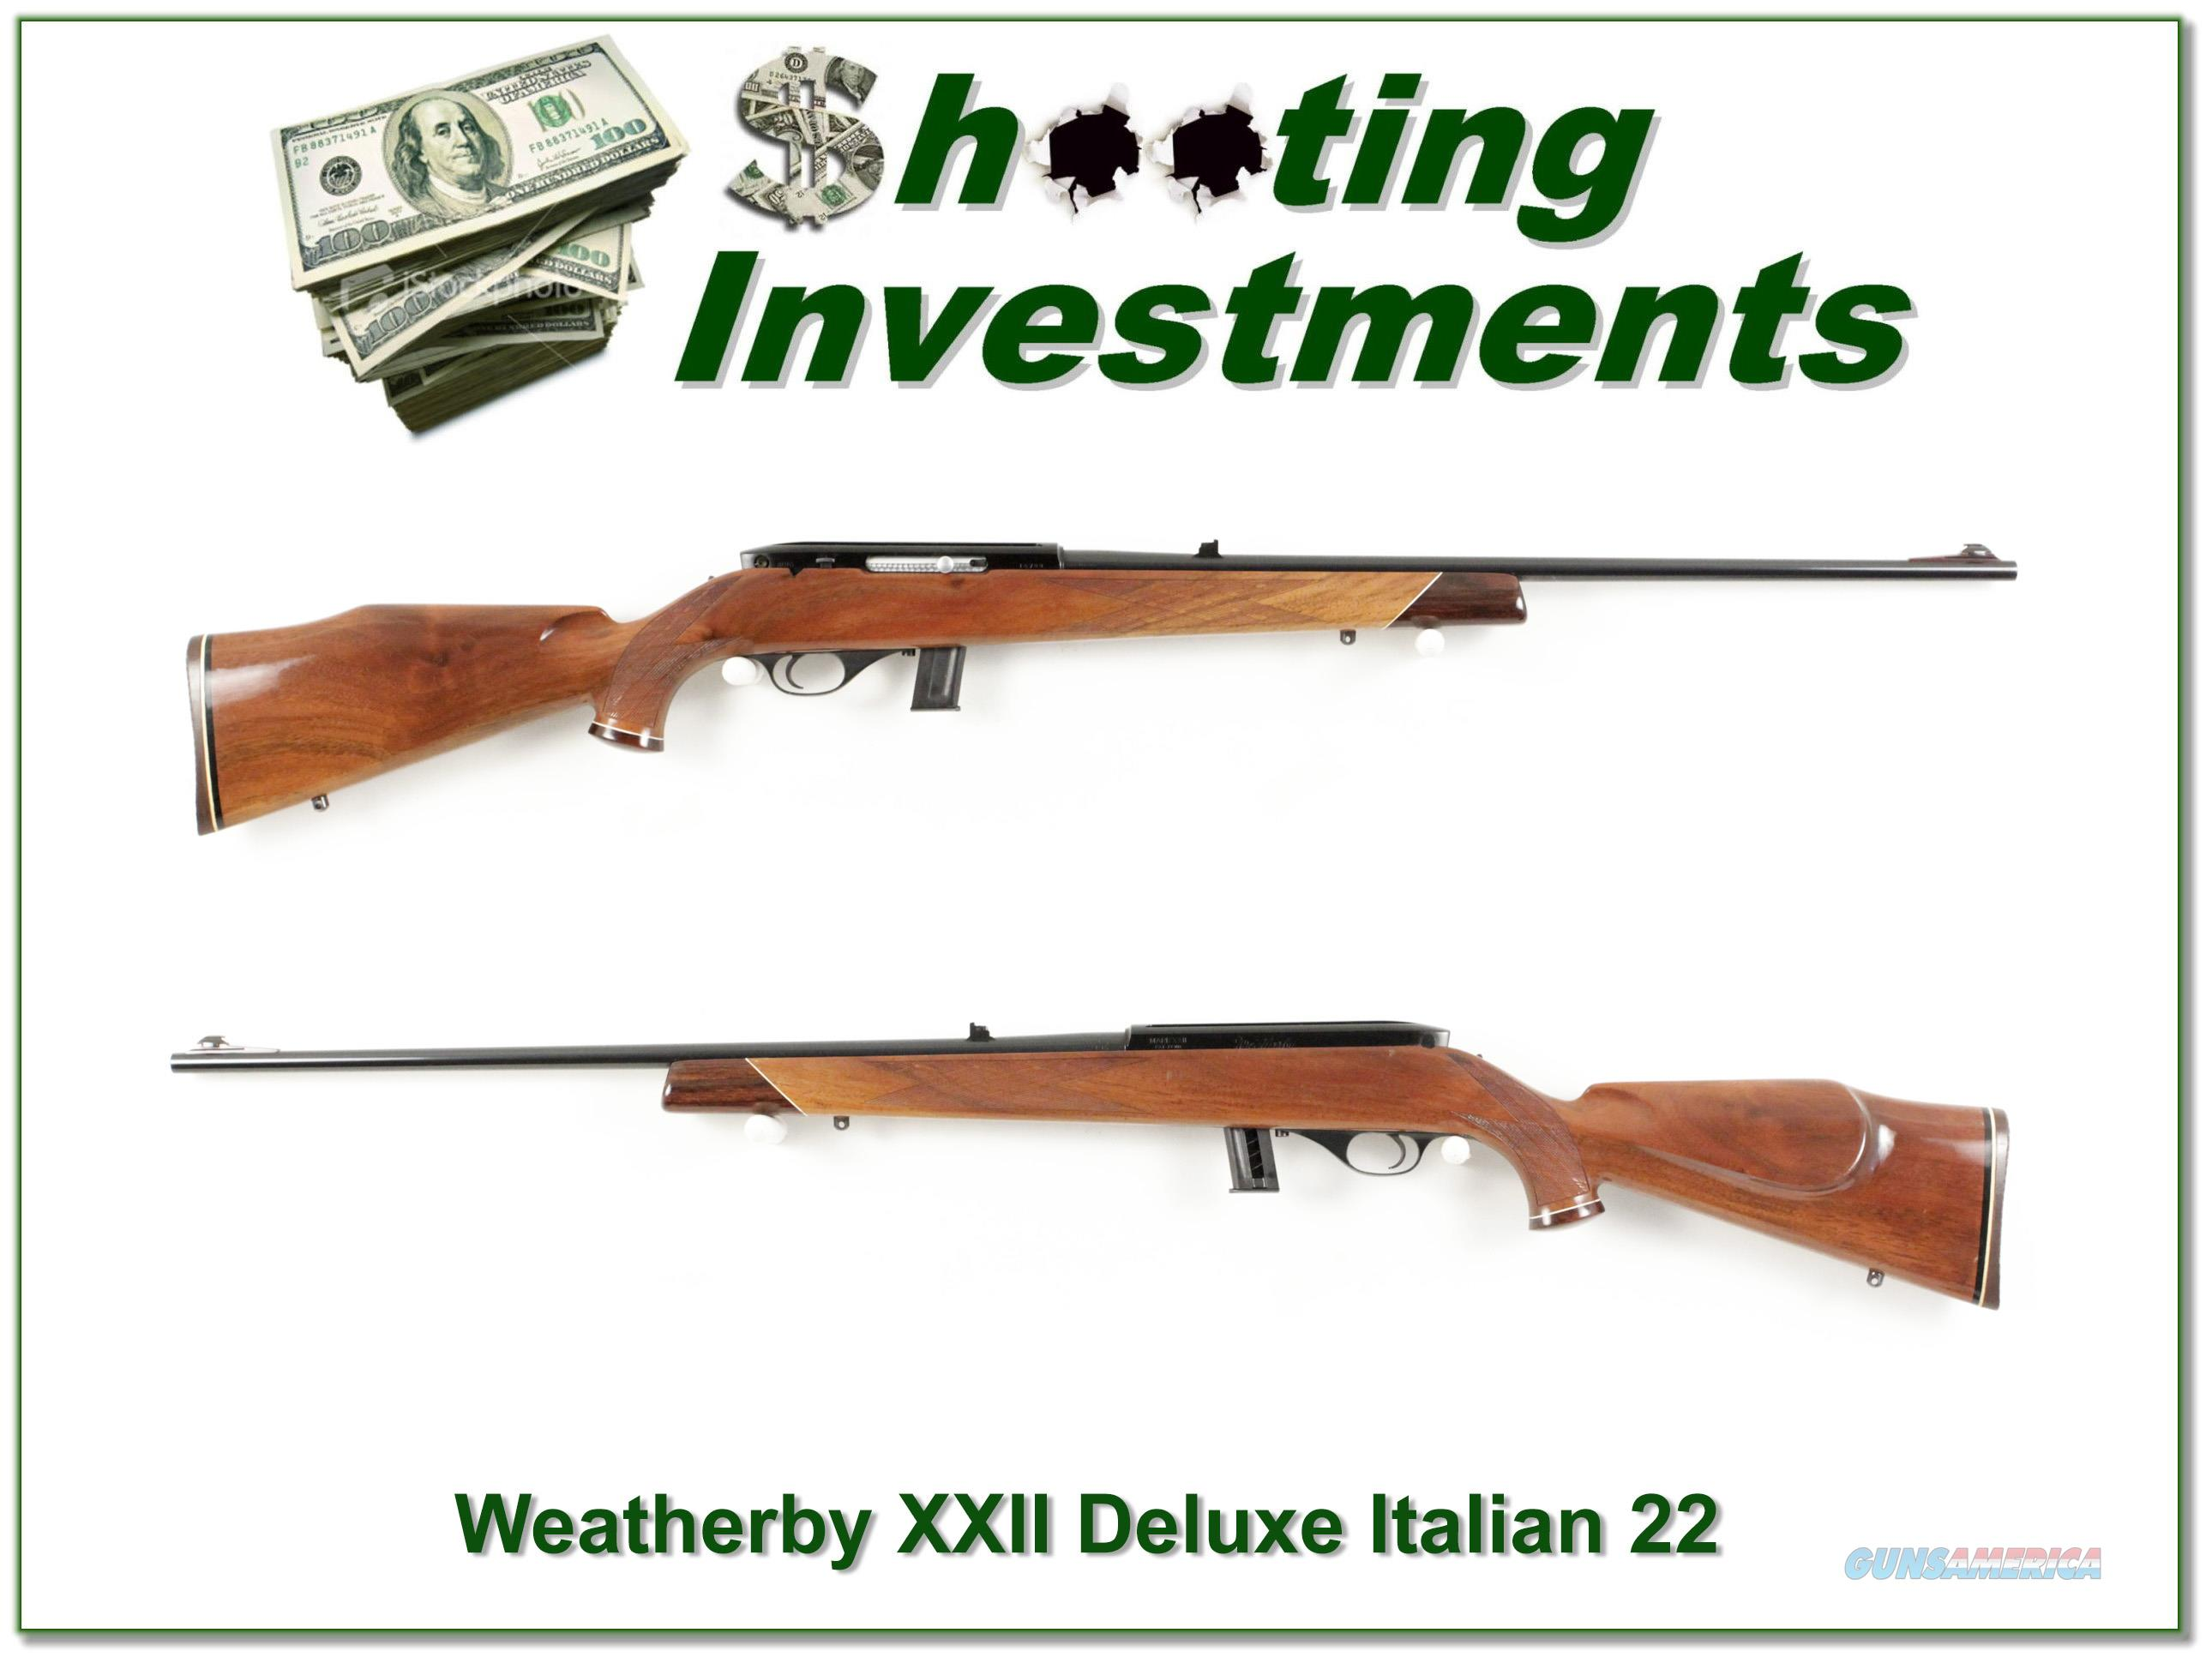 Weatherby XXII 22 Auto Deluxe Italian Exc!  Guns > Rifles > Weatherby Rifles > Sporting